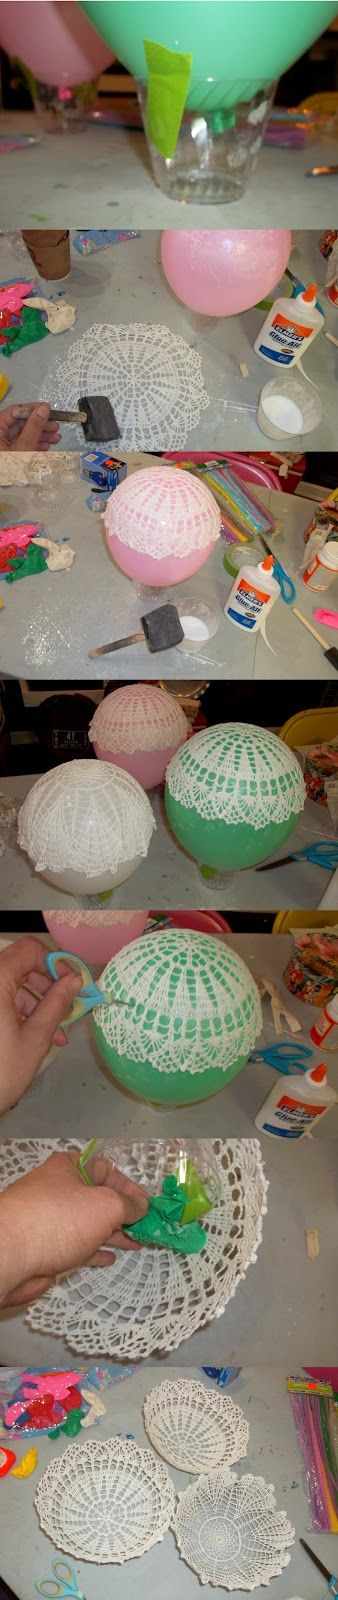 Blueberry Bog :: vintage & handmade: DIY :: Upcycled Doily Bowls at Blueberry Bog